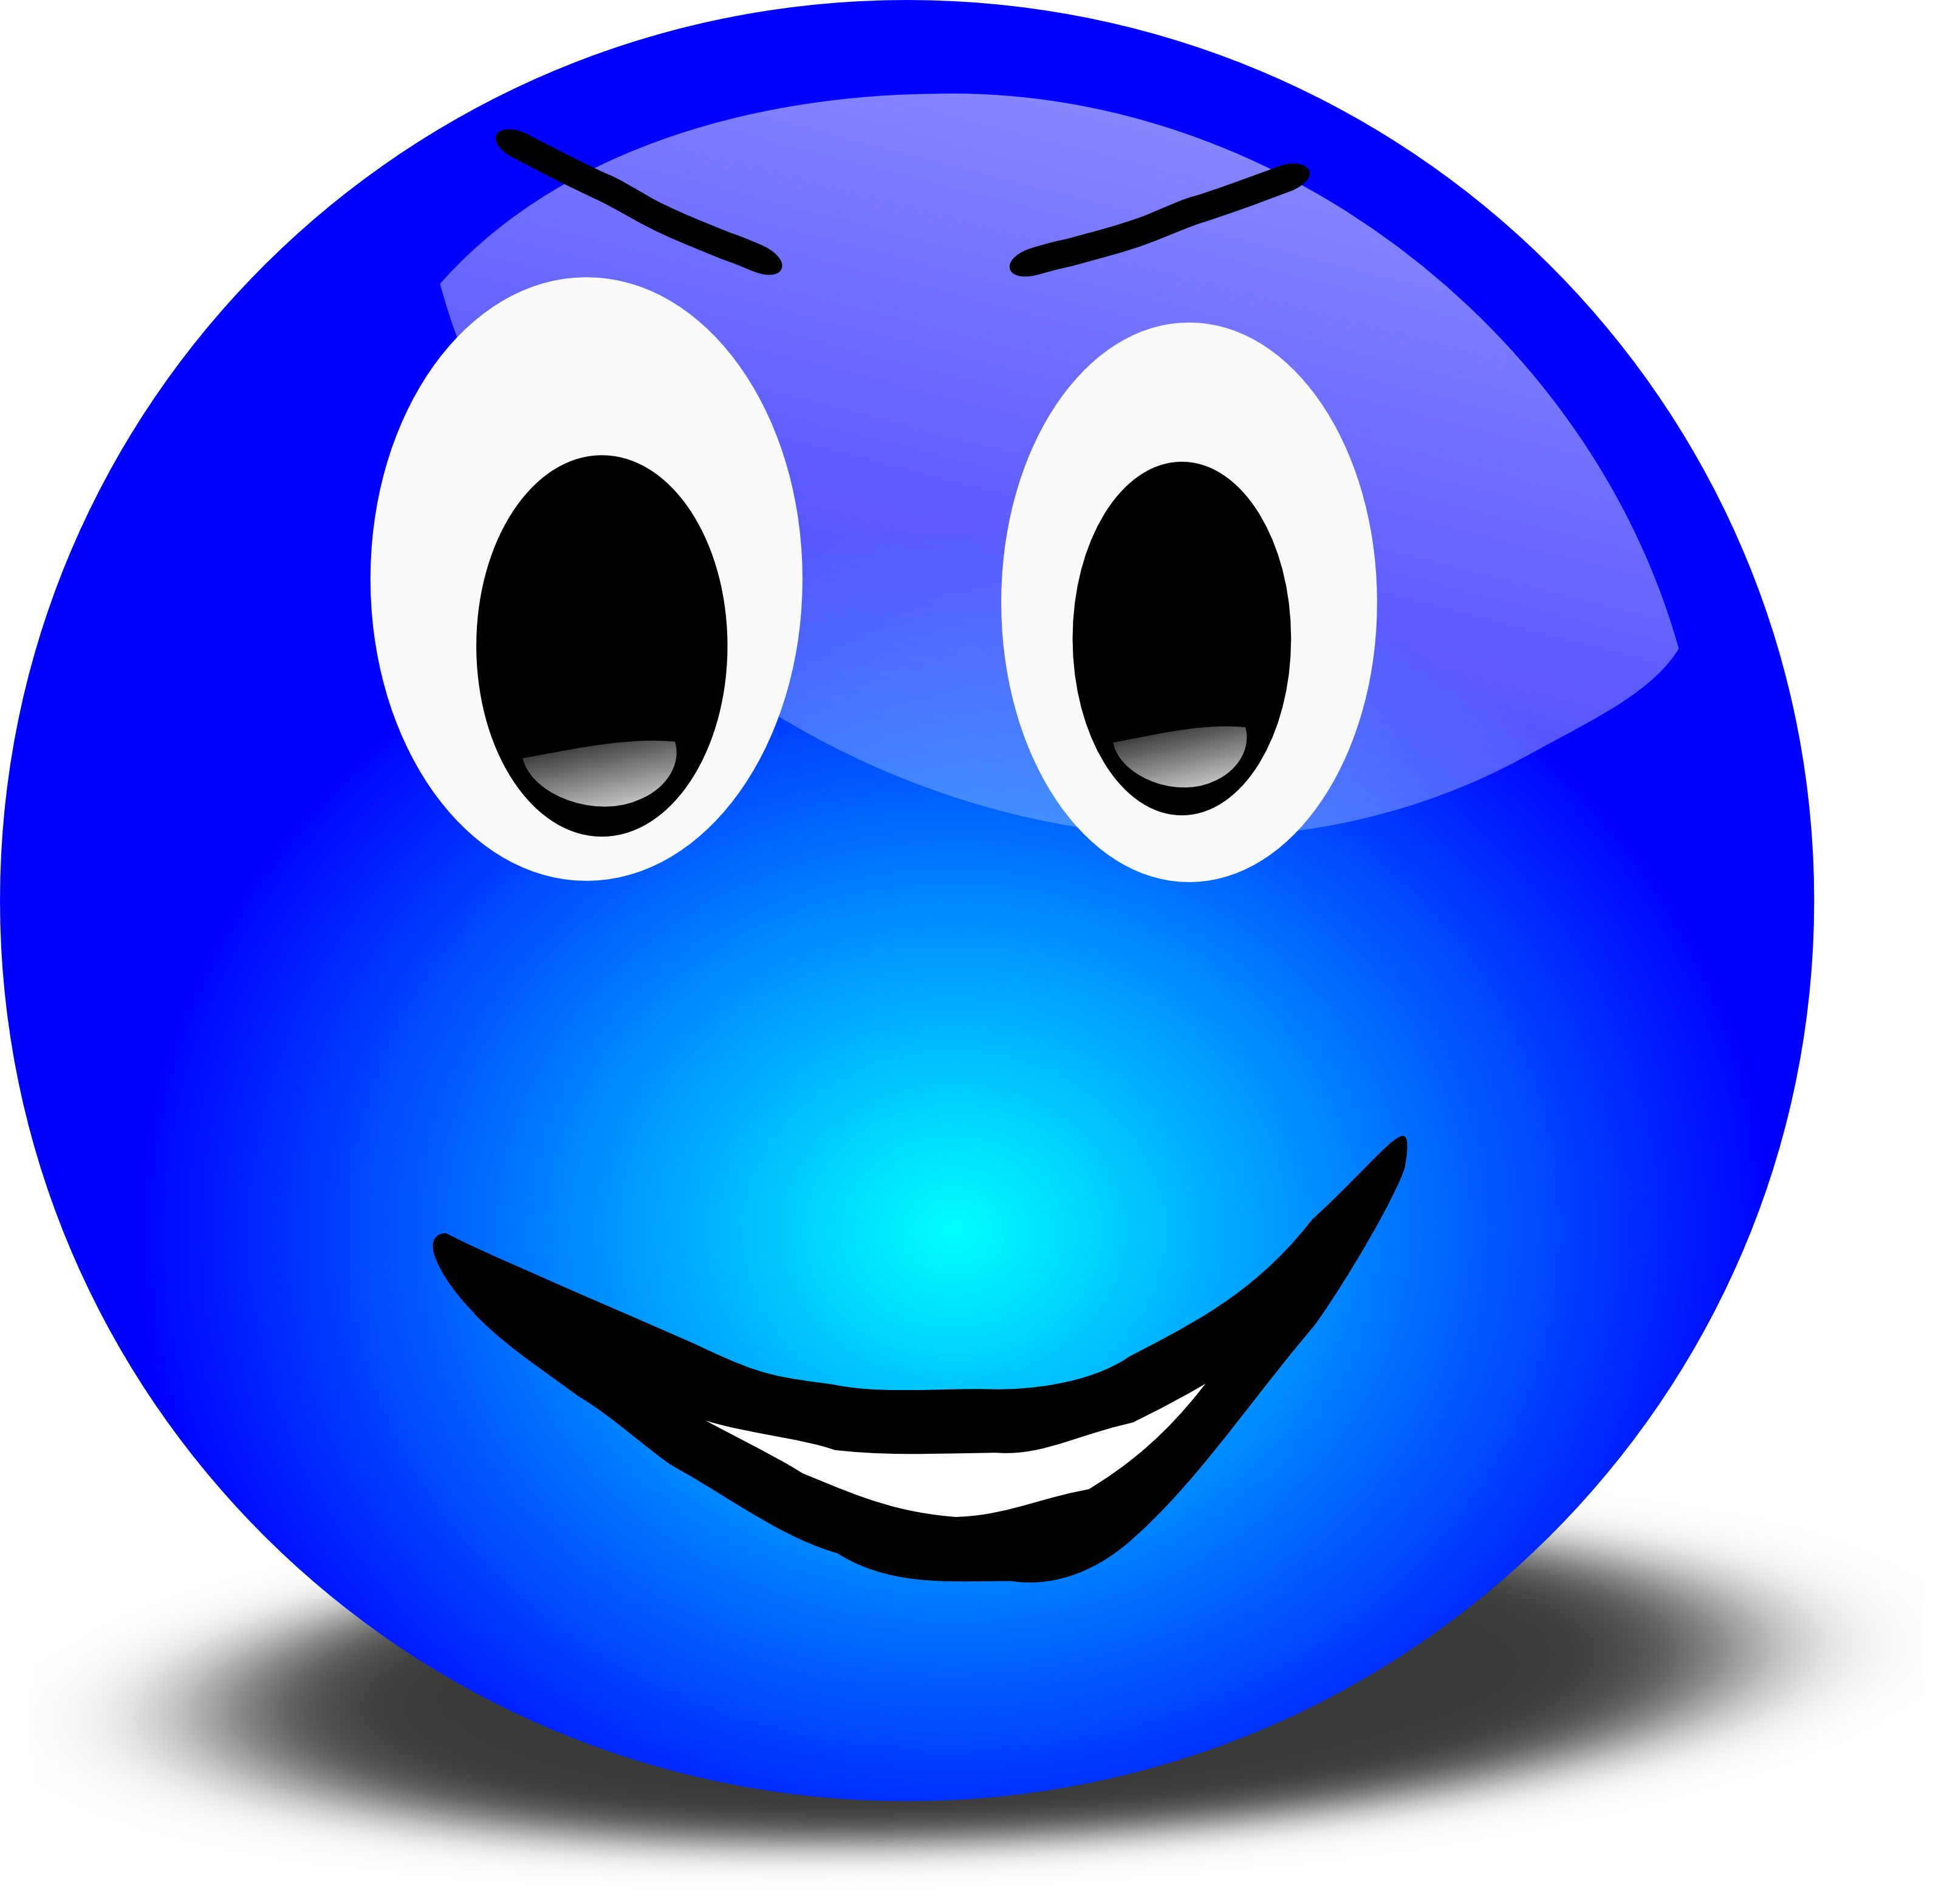 Blue happy face clipart image royalty free stock Free 3d Grinning Blue Smiley Face Clipart Illustration by Picsburg ... image royalty free stock